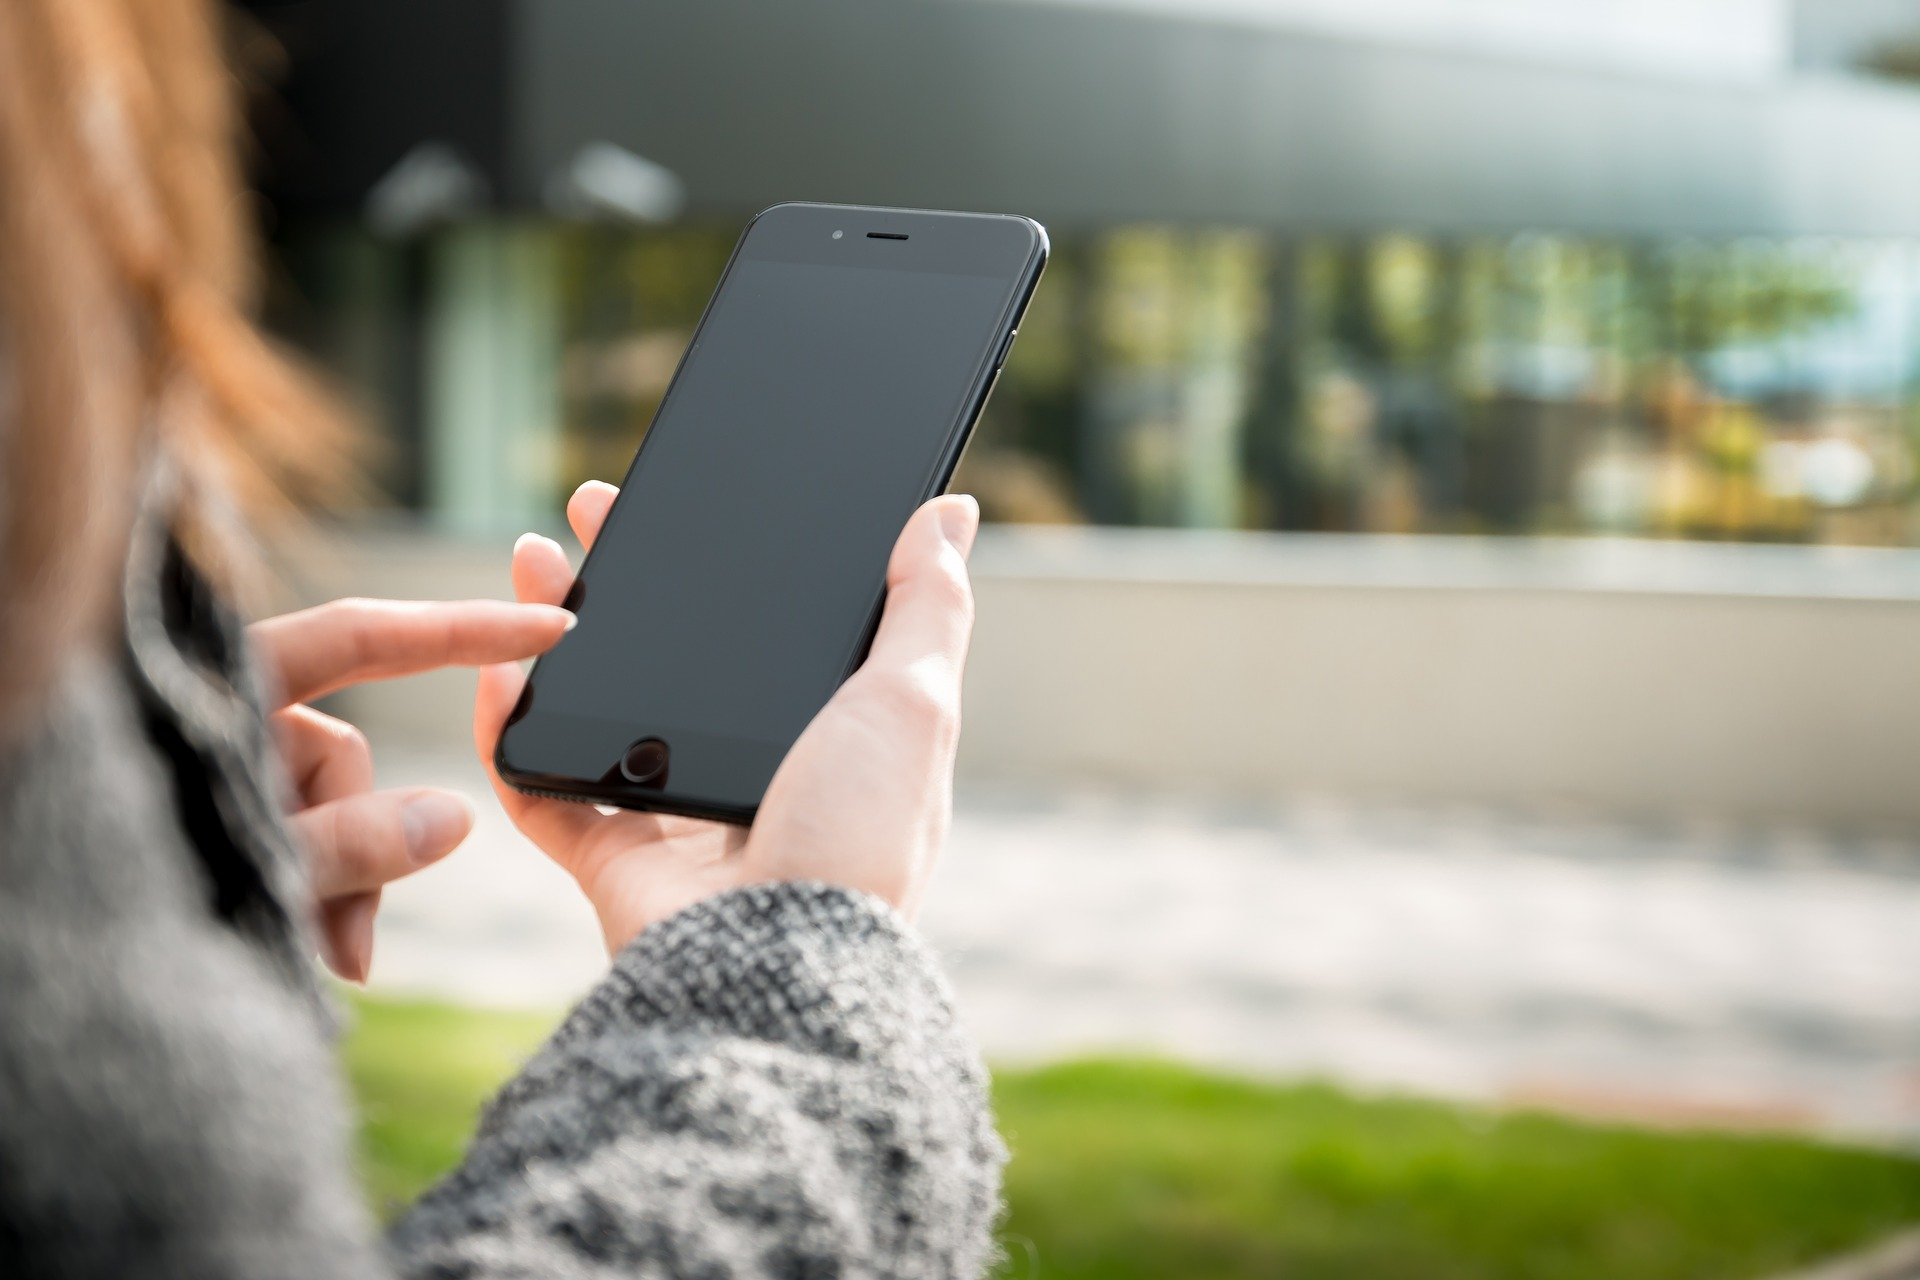 Mental health app marketing commonly presents mental health problems as ubiquitous and individuals as responsible for mental wellbeing.